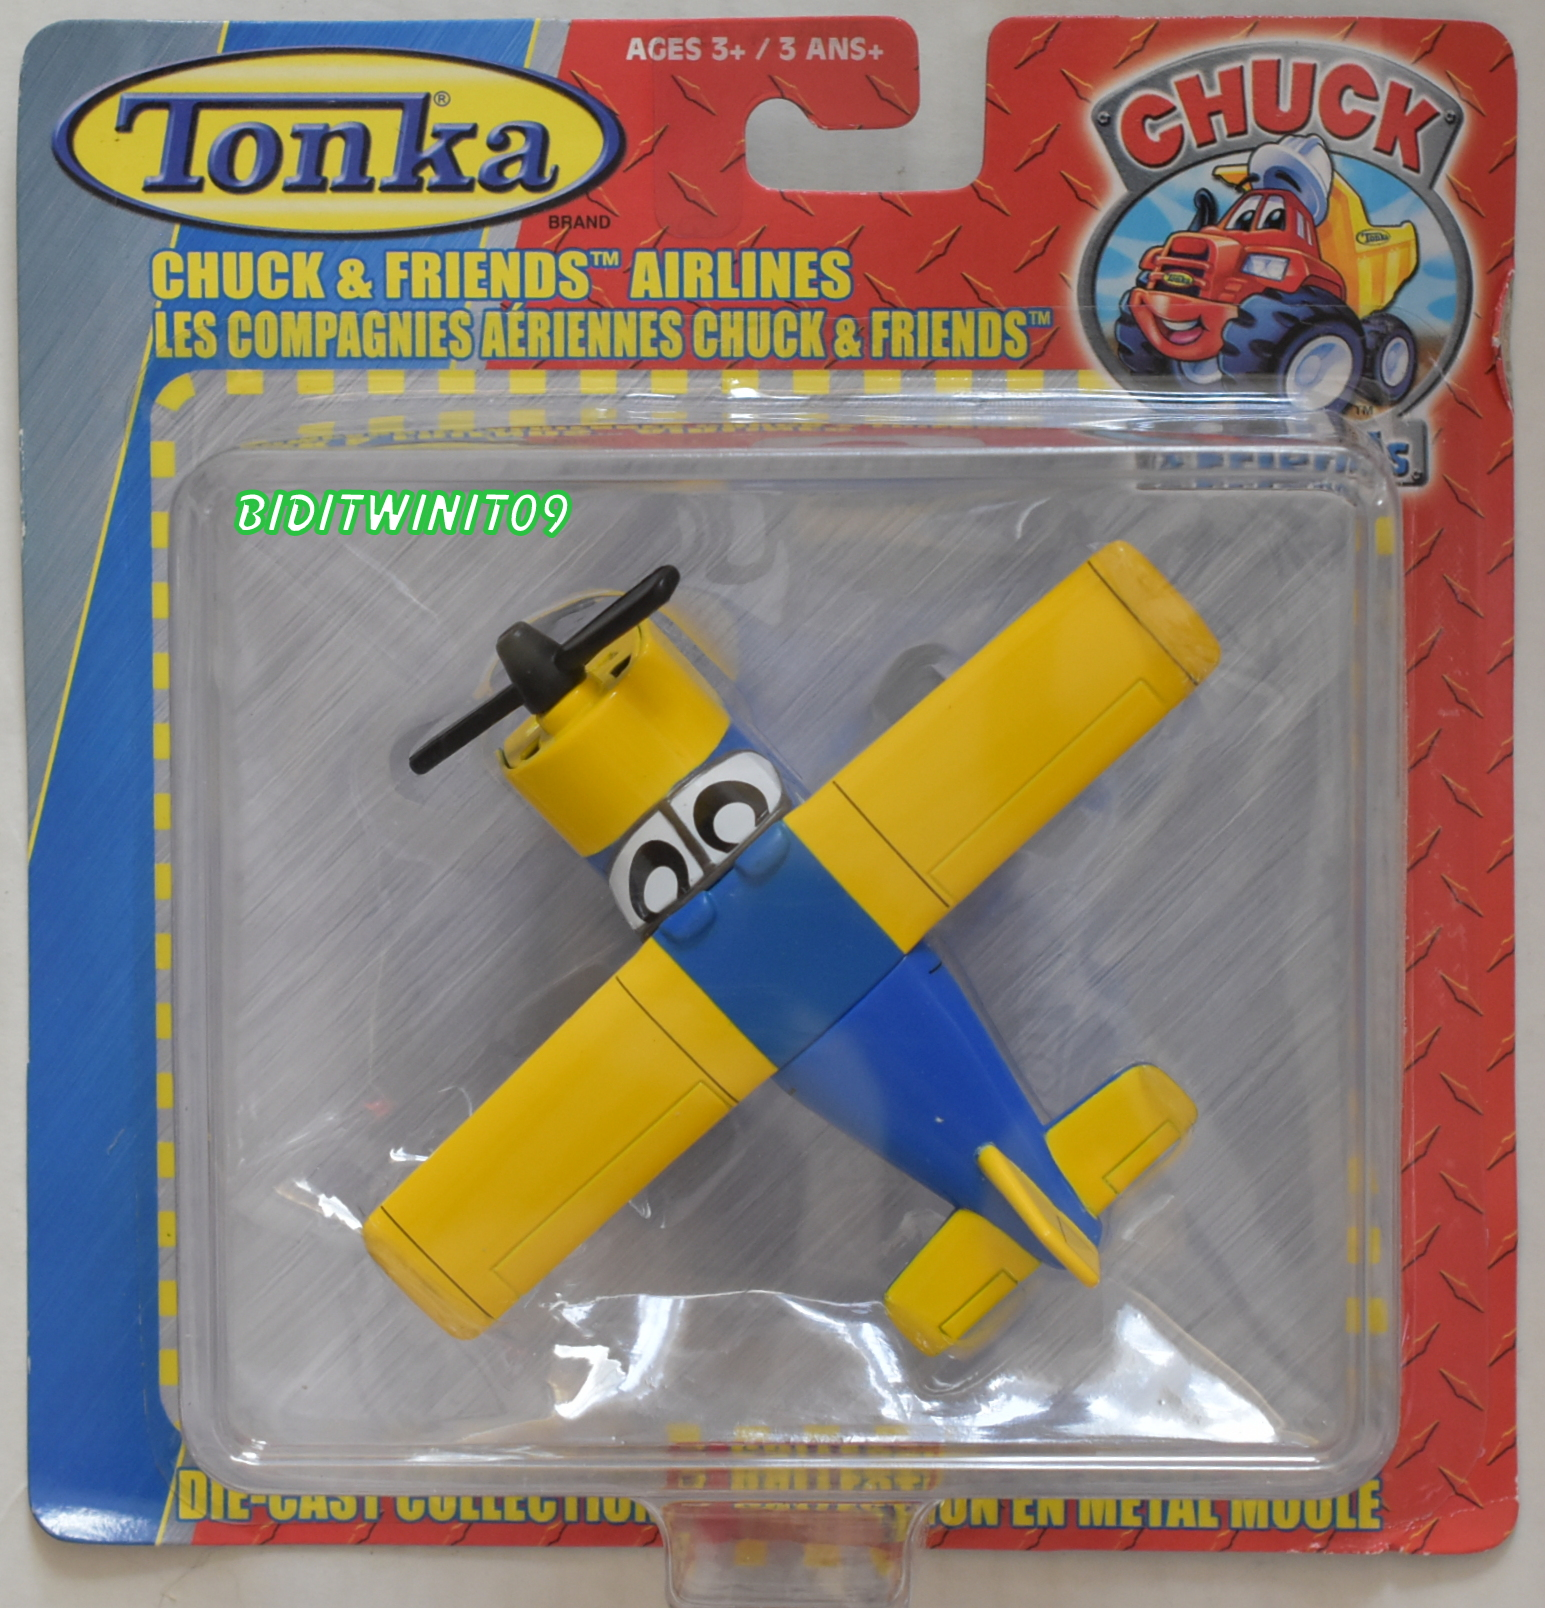 TONKA CHUCK & FRIENDS AIRLINES CUBBY CARGO E+